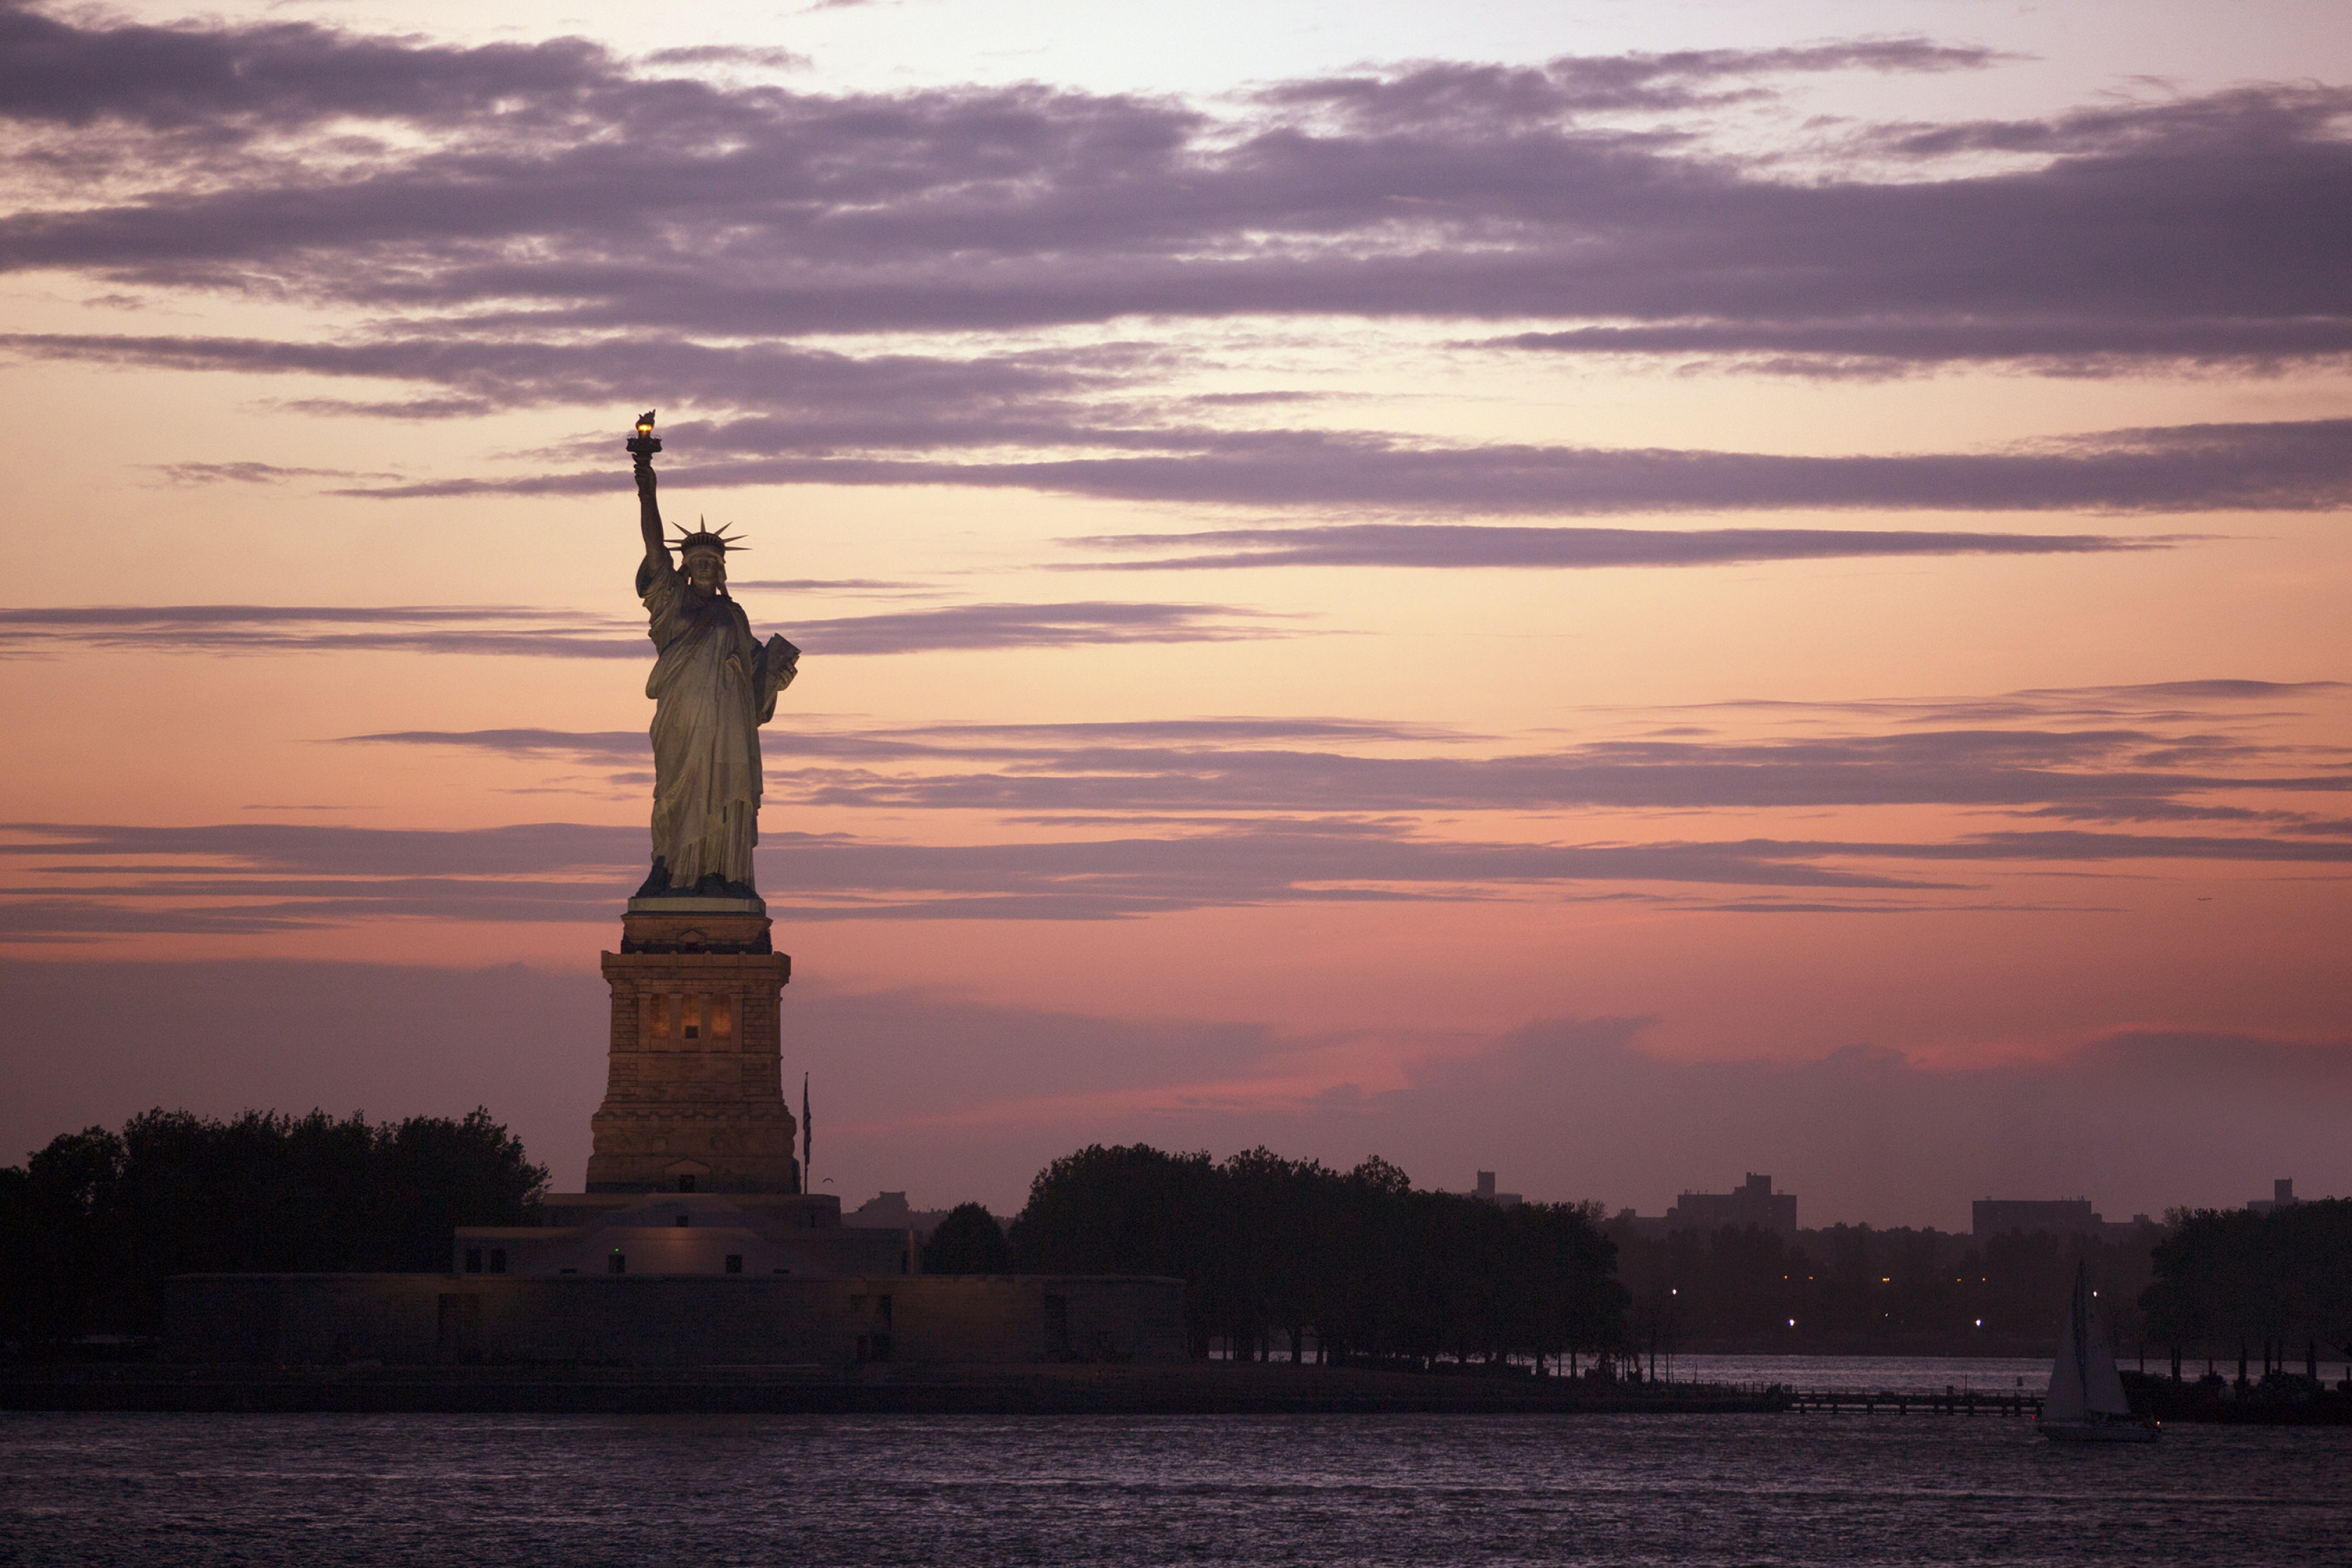 colorful red and orange sunset with purple clouds behind a dimly lit Statue of Liberty